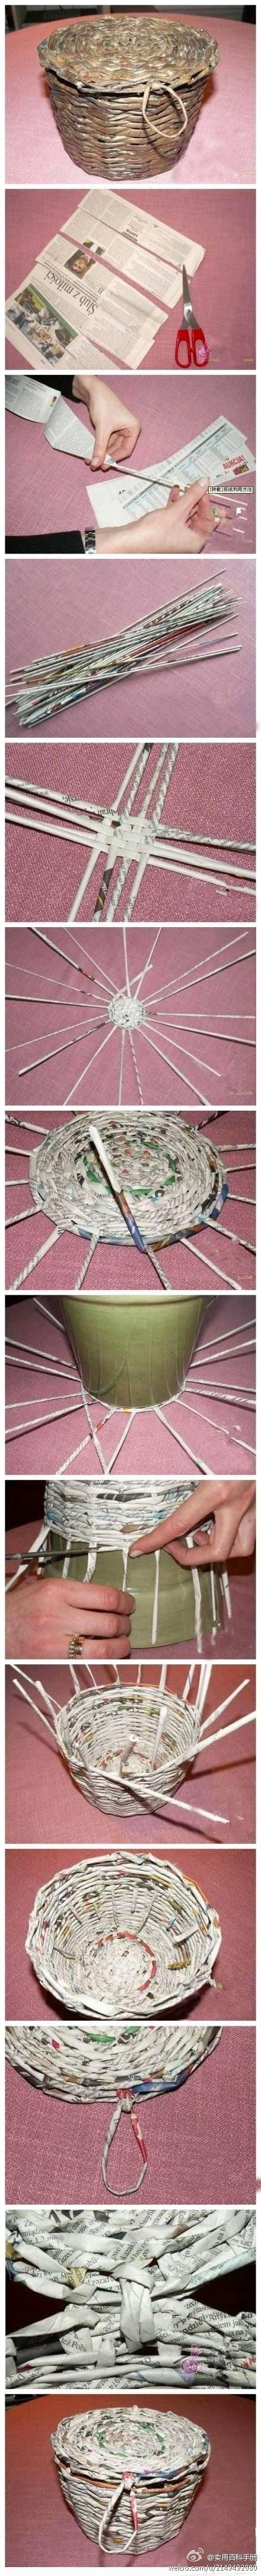 DIY Newspaper Basket DIY Projects | UsefulDIY.com